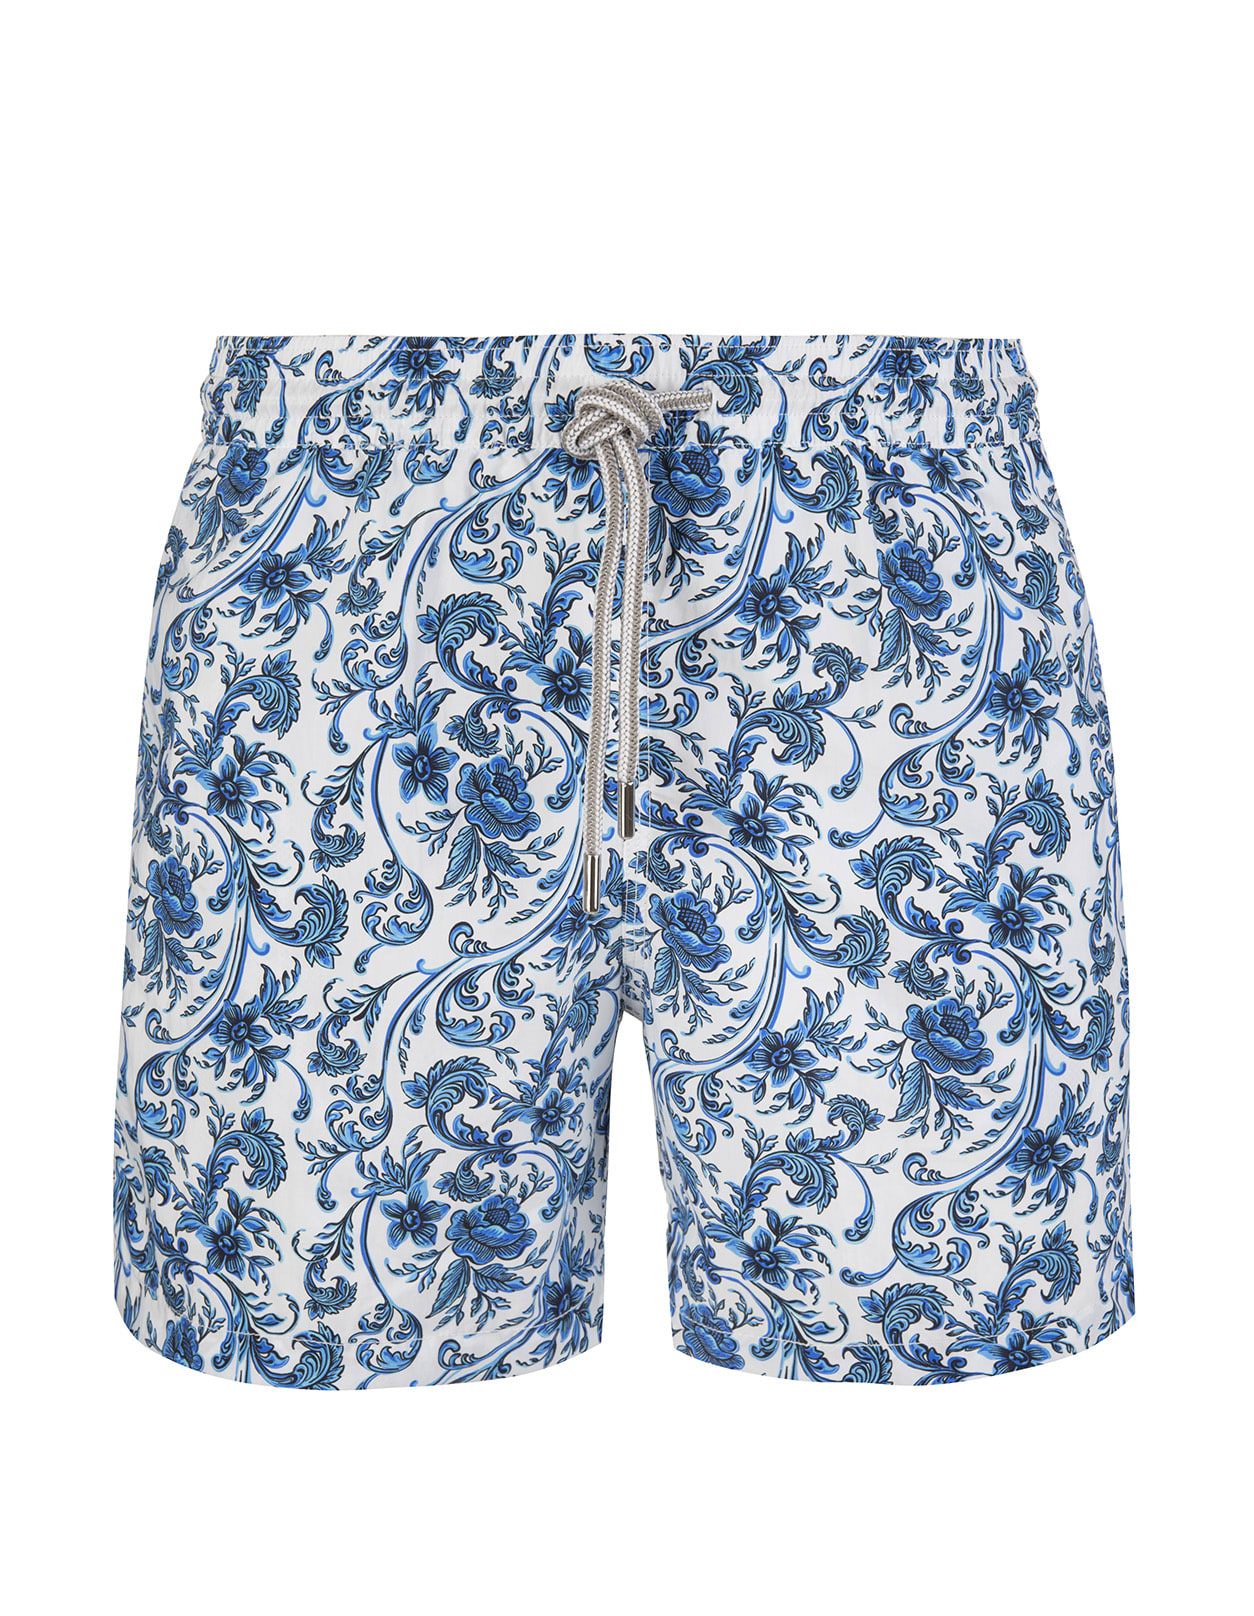 Blue And White Floral Swimsuit